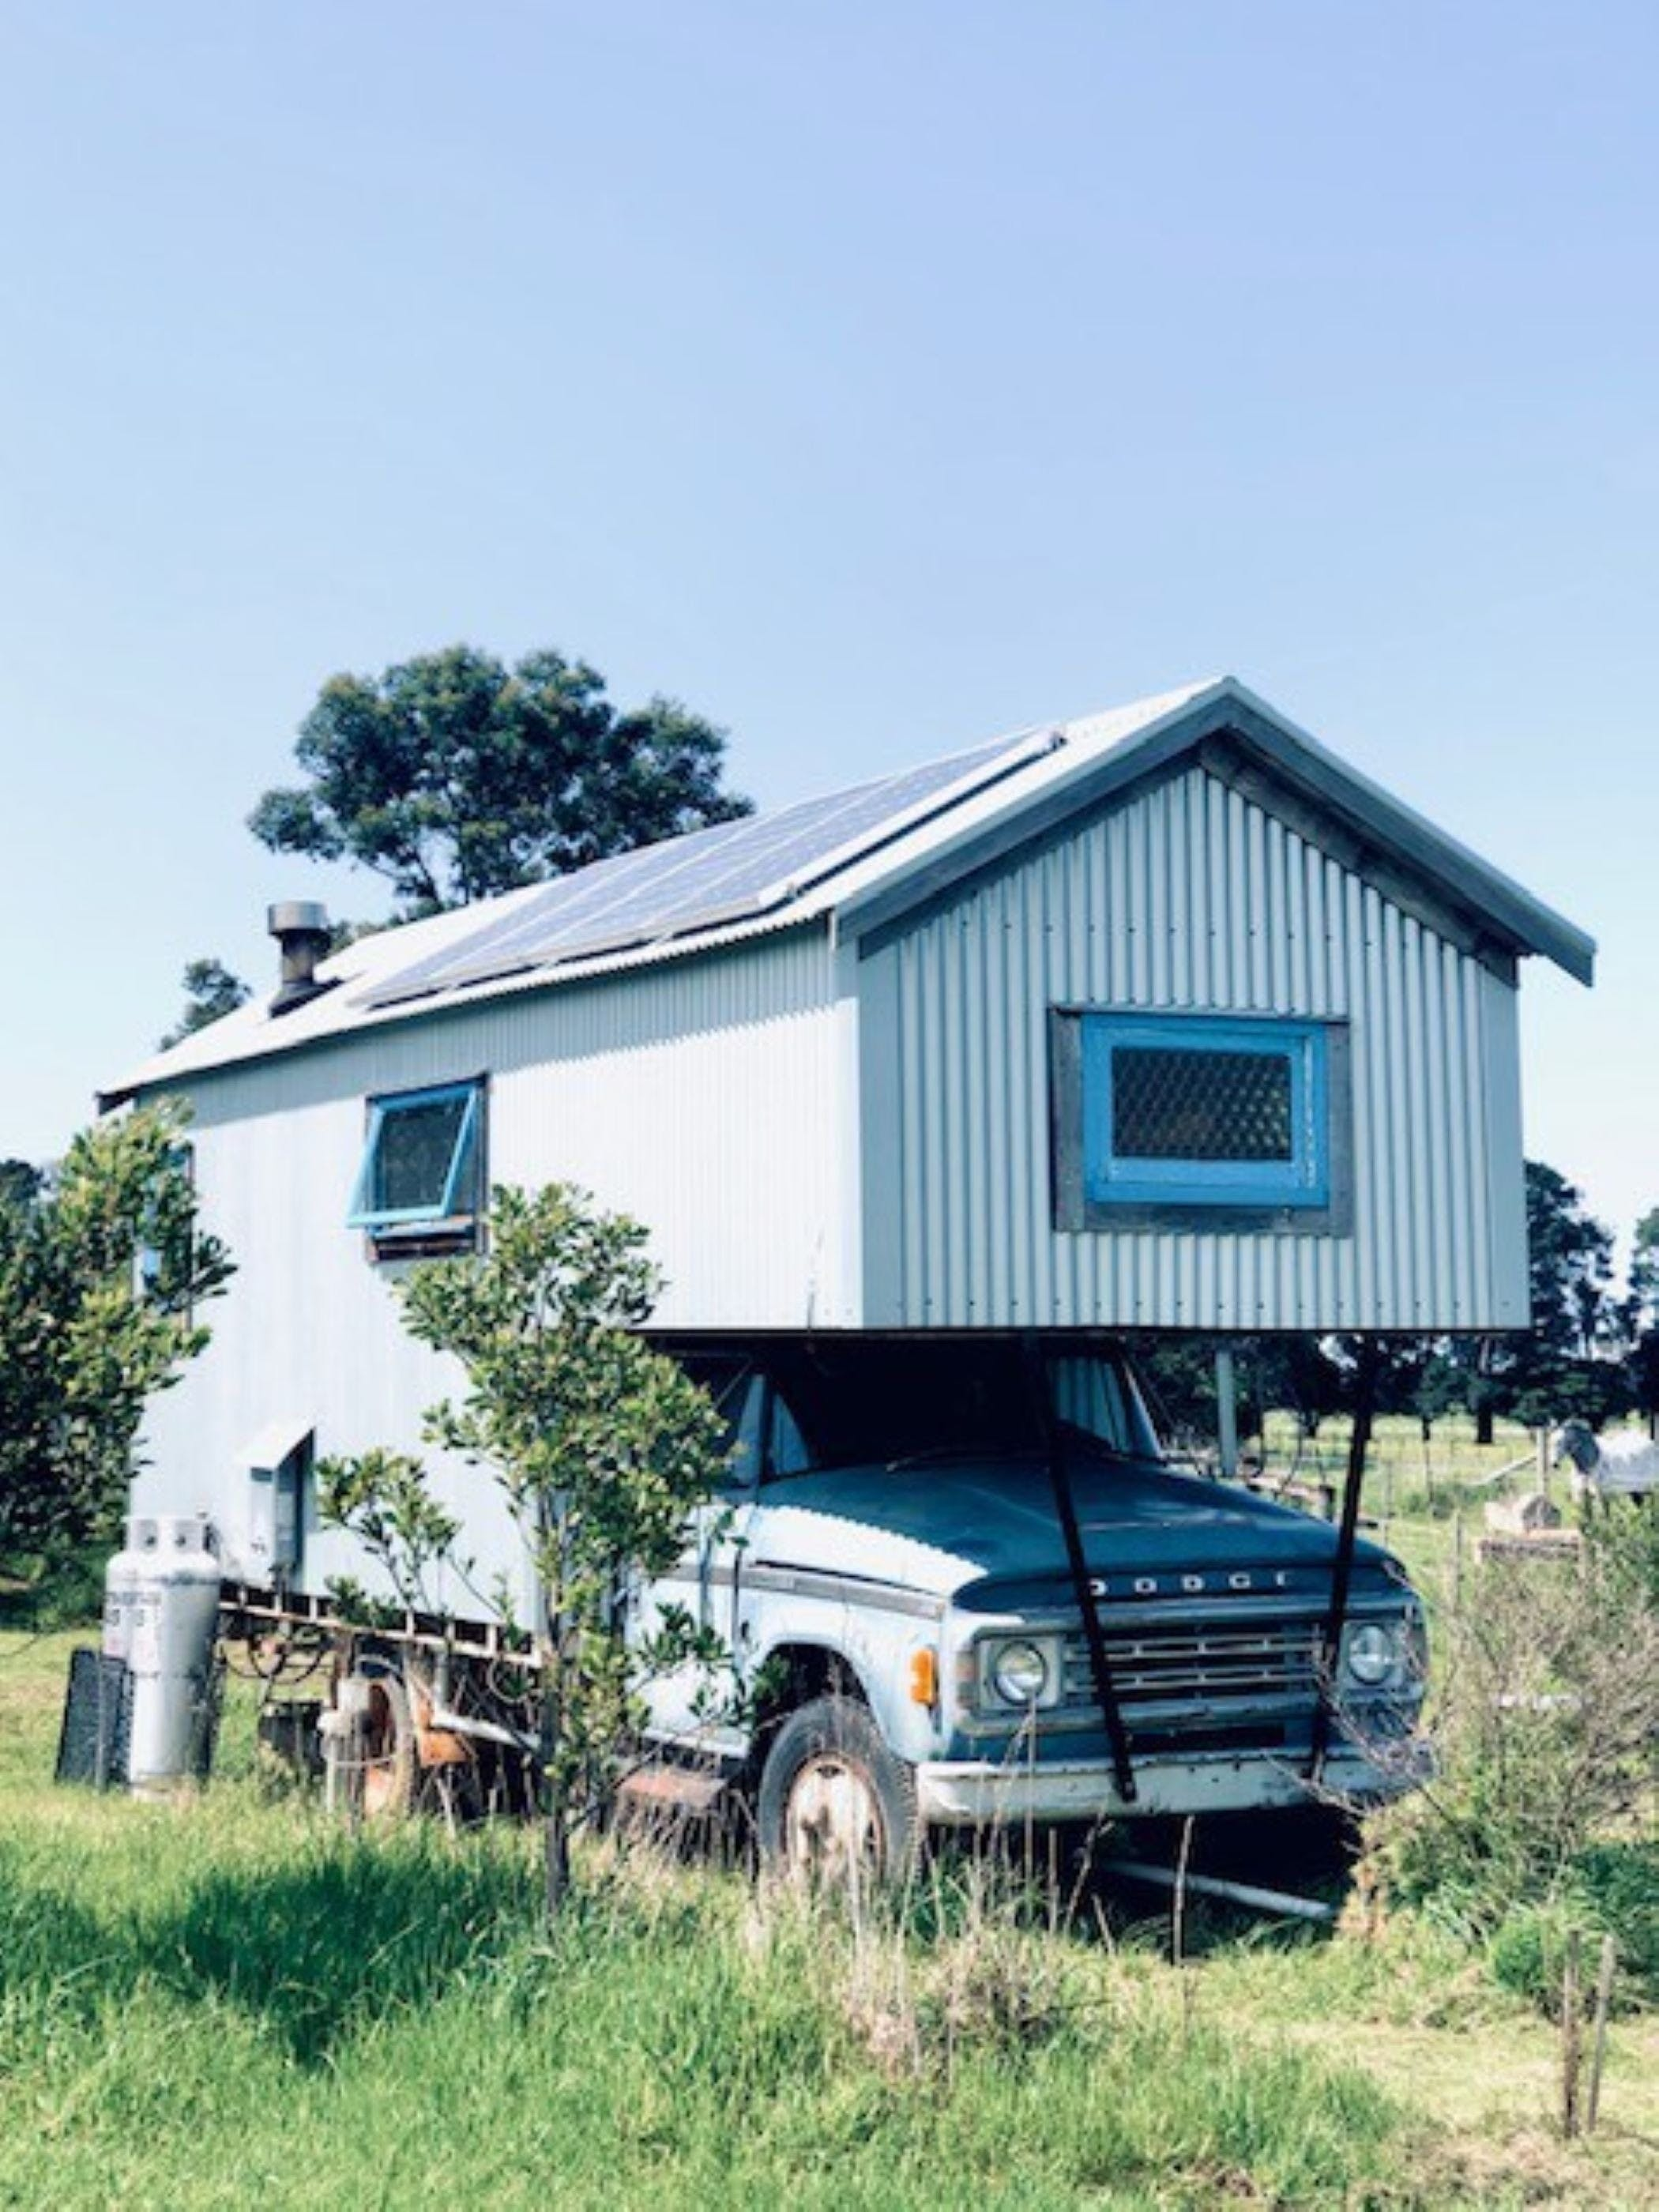 Torquay Farmstay Studio Truck - Perisher Accommodation